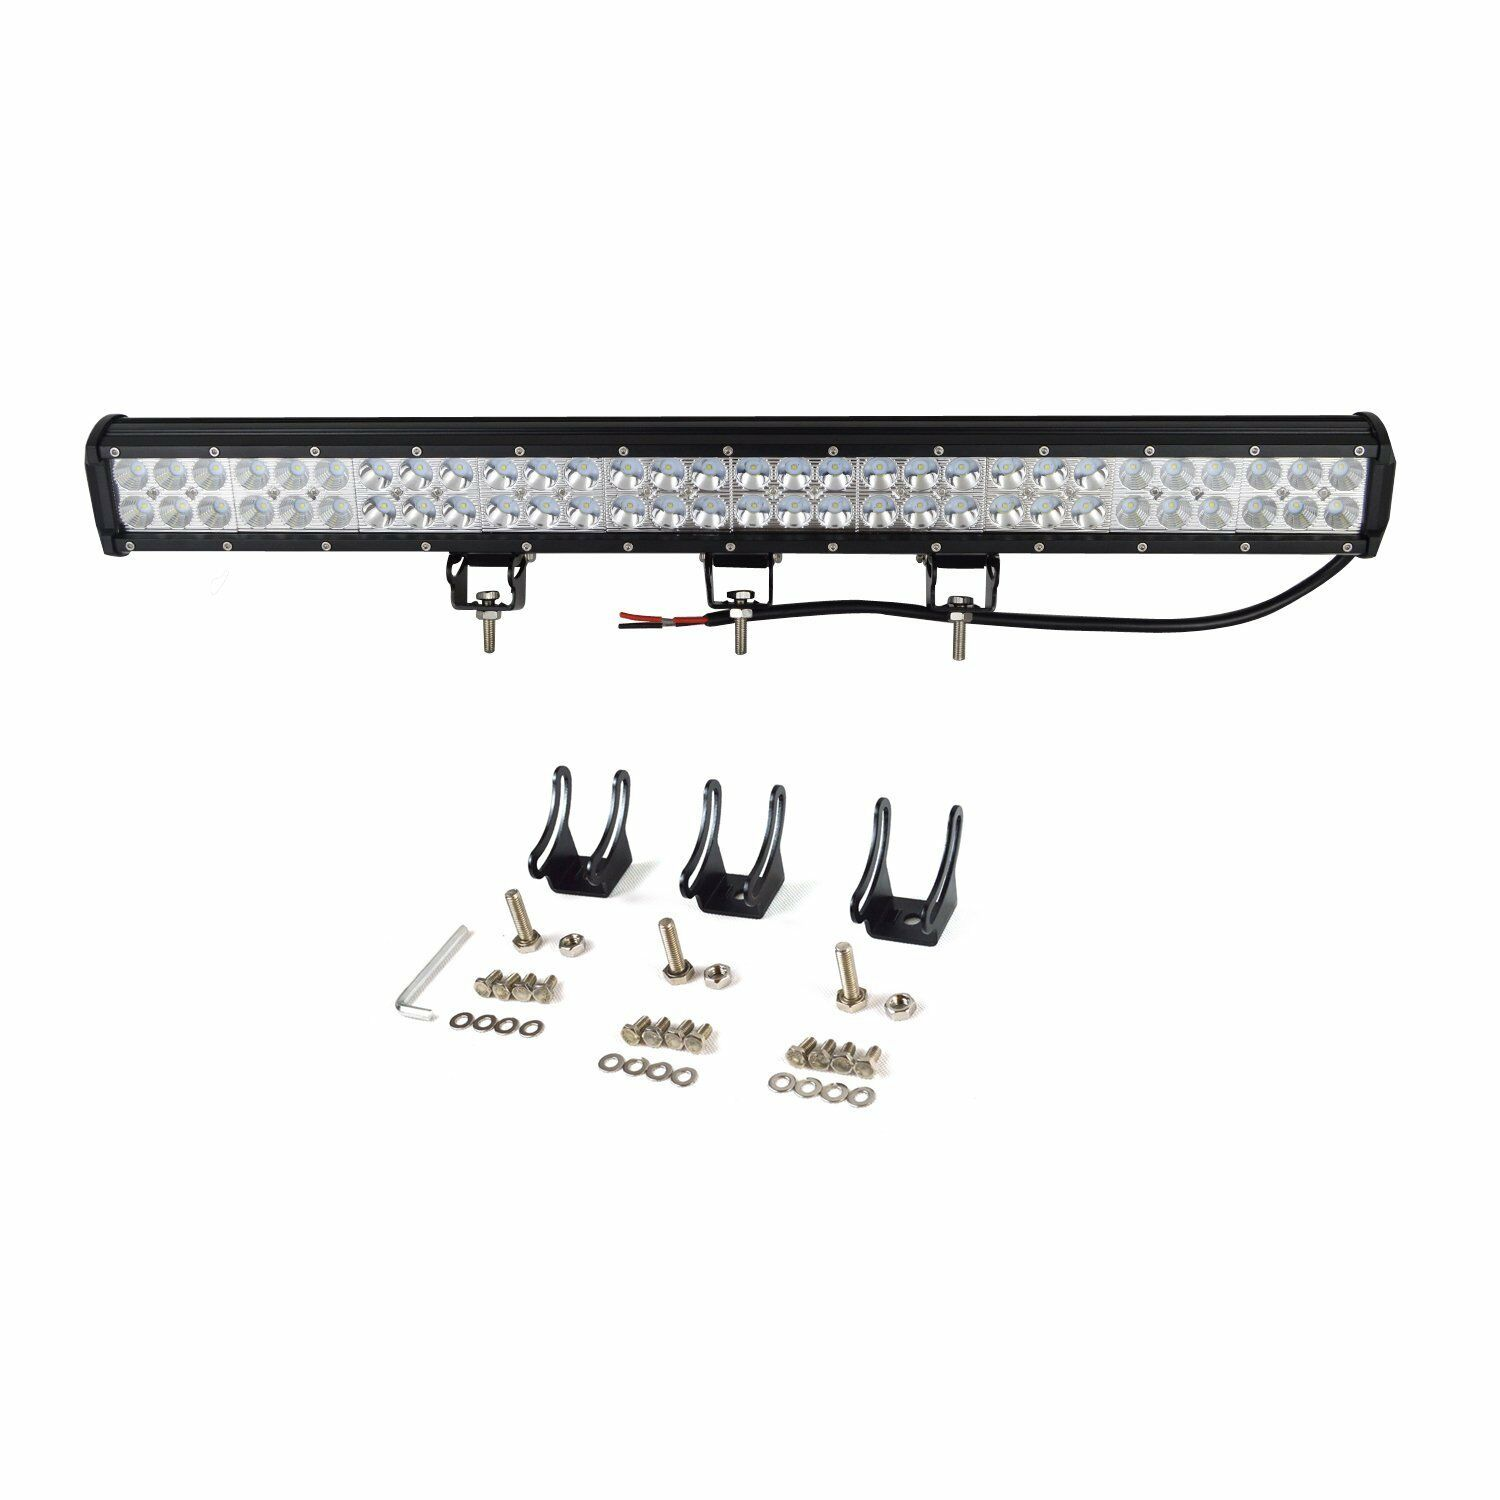 28inch Cree Led Work Light Bar For Truck Car Atv Suv 4x4